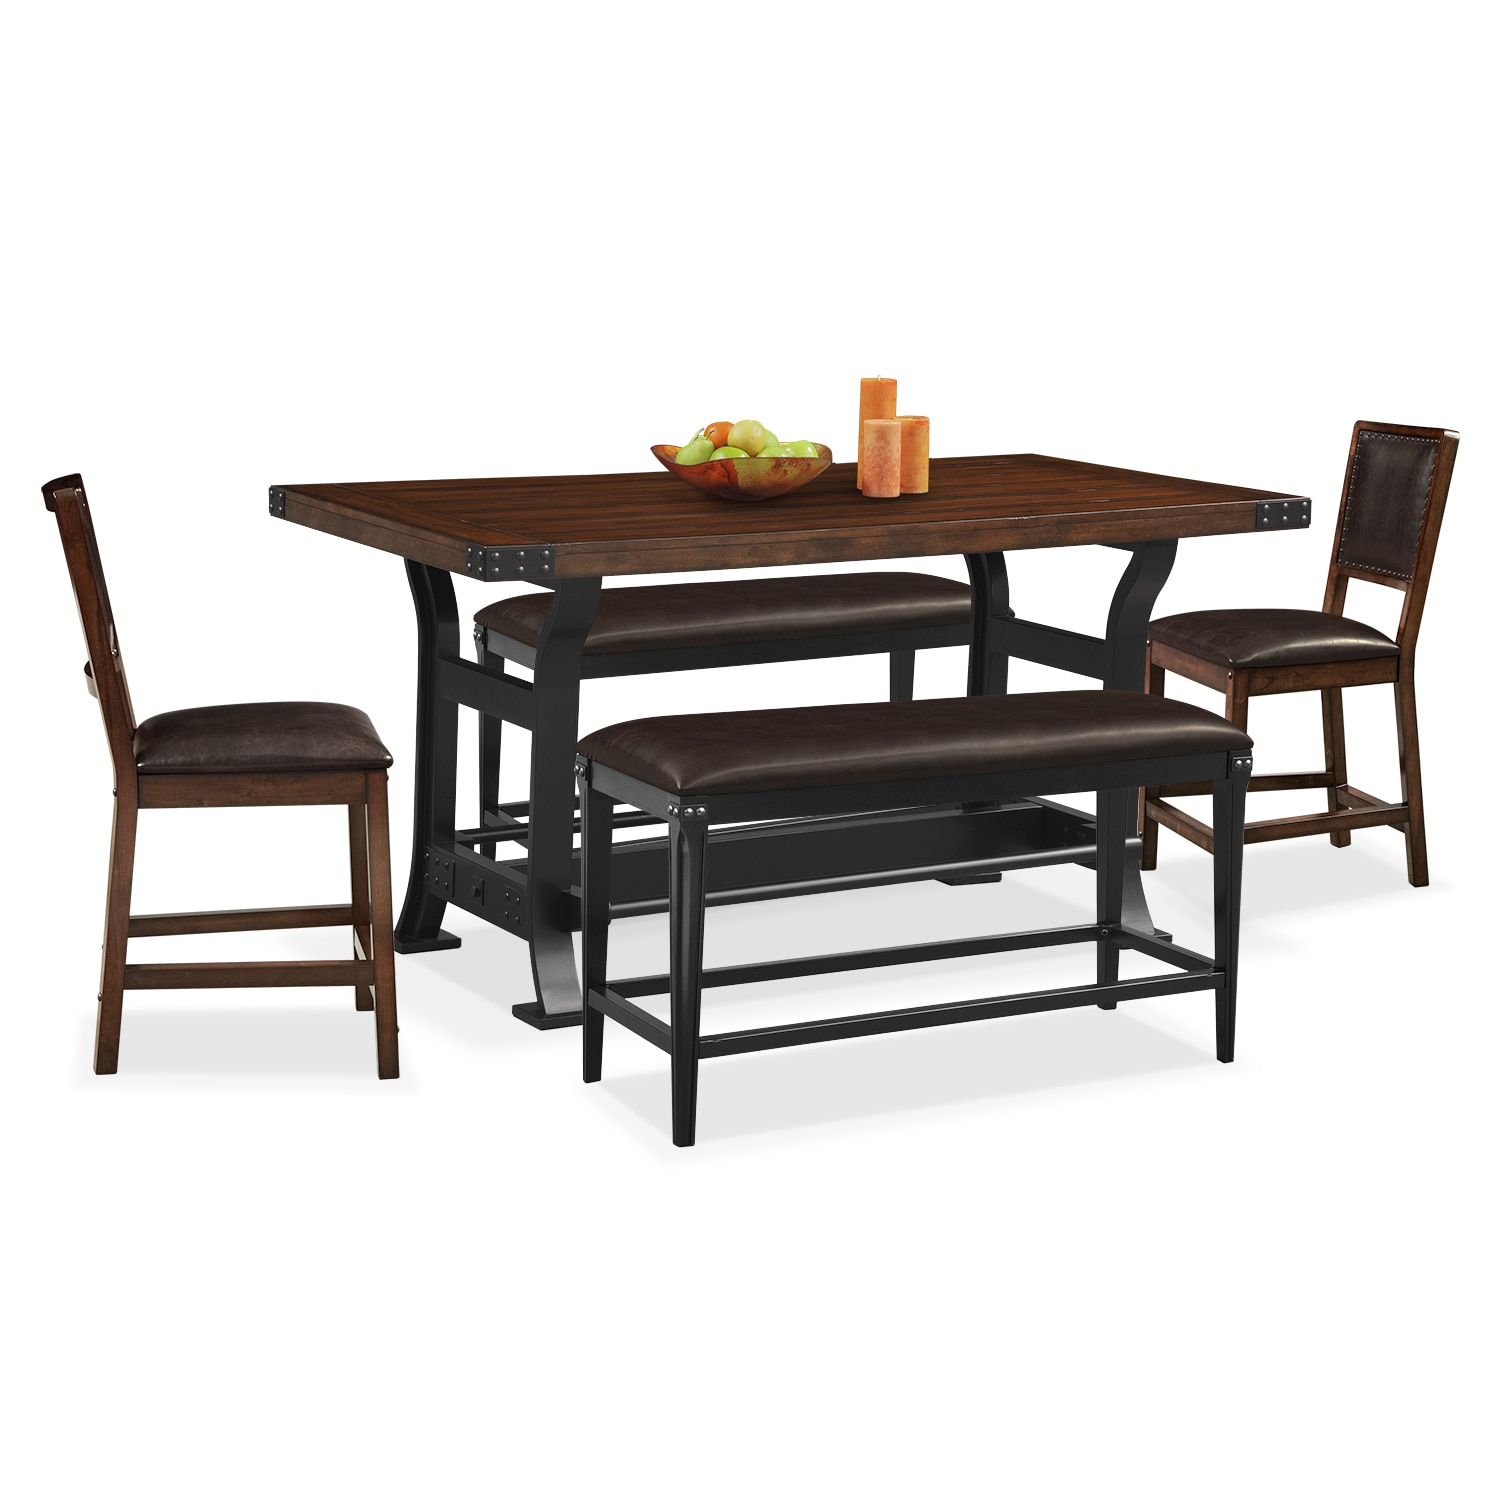 Dining Room Table For 2: Newcastle Counter-Height Dining Table, 2 Side Chairs And 2